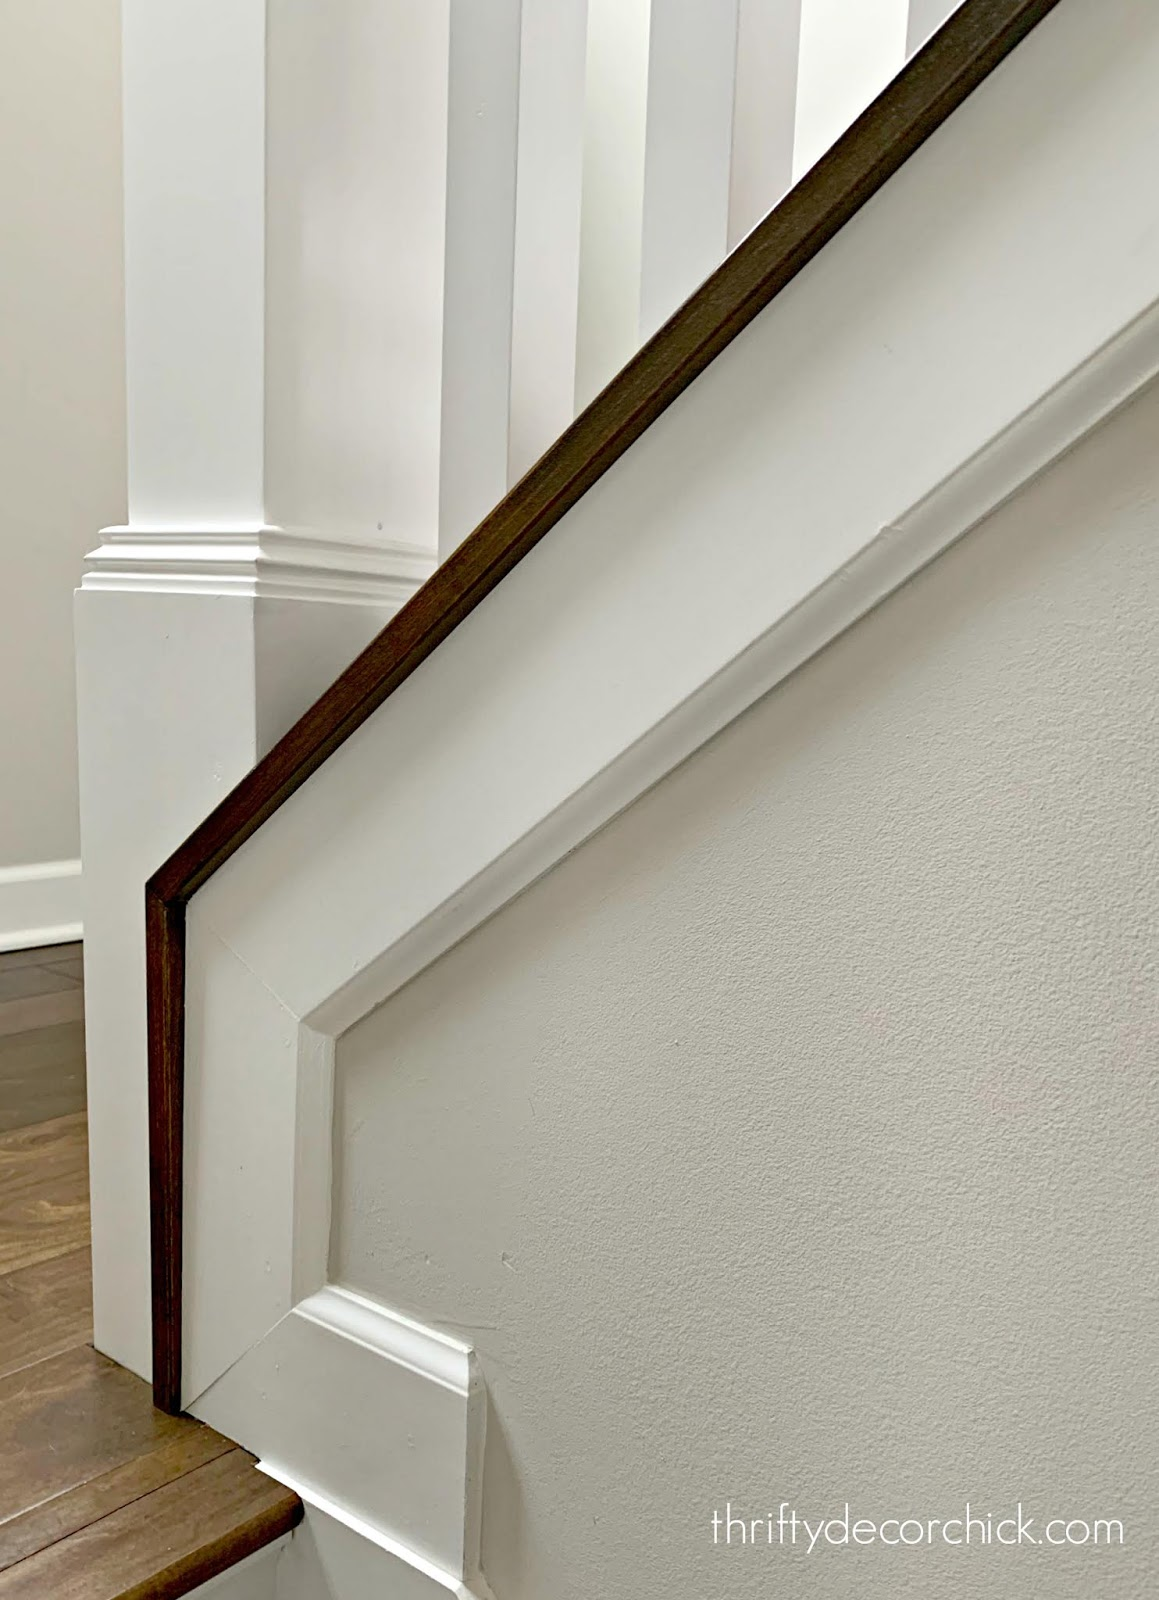 baseboard as stair trim